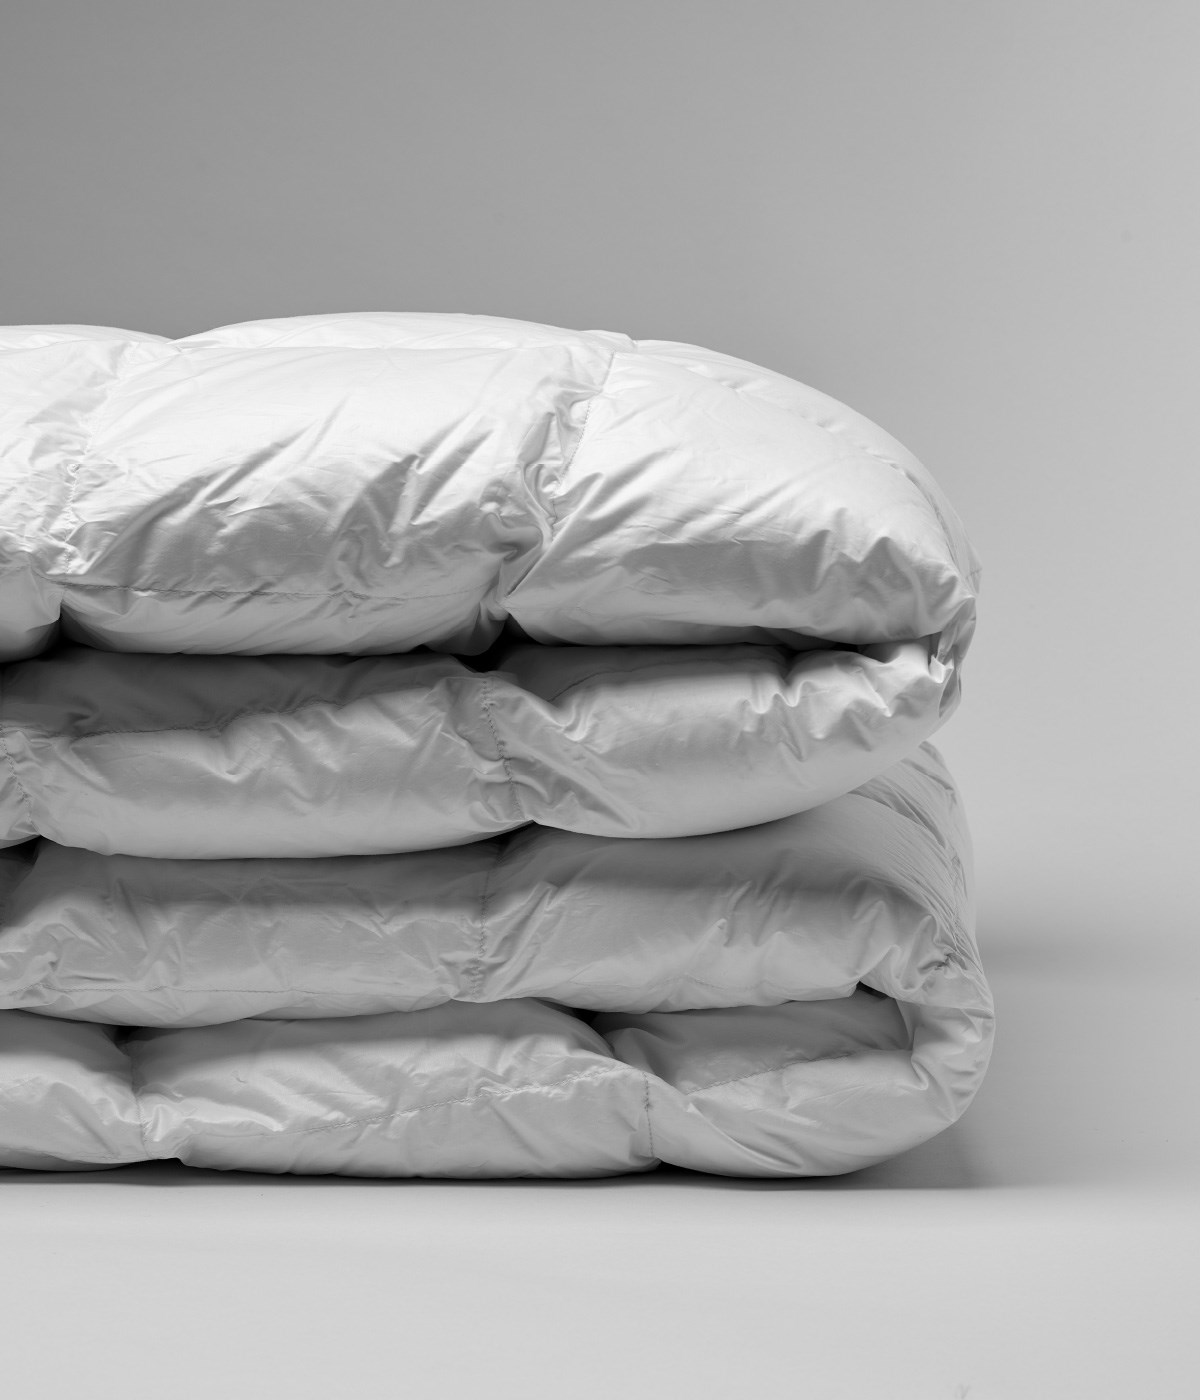 Down Comforters folded and stacked